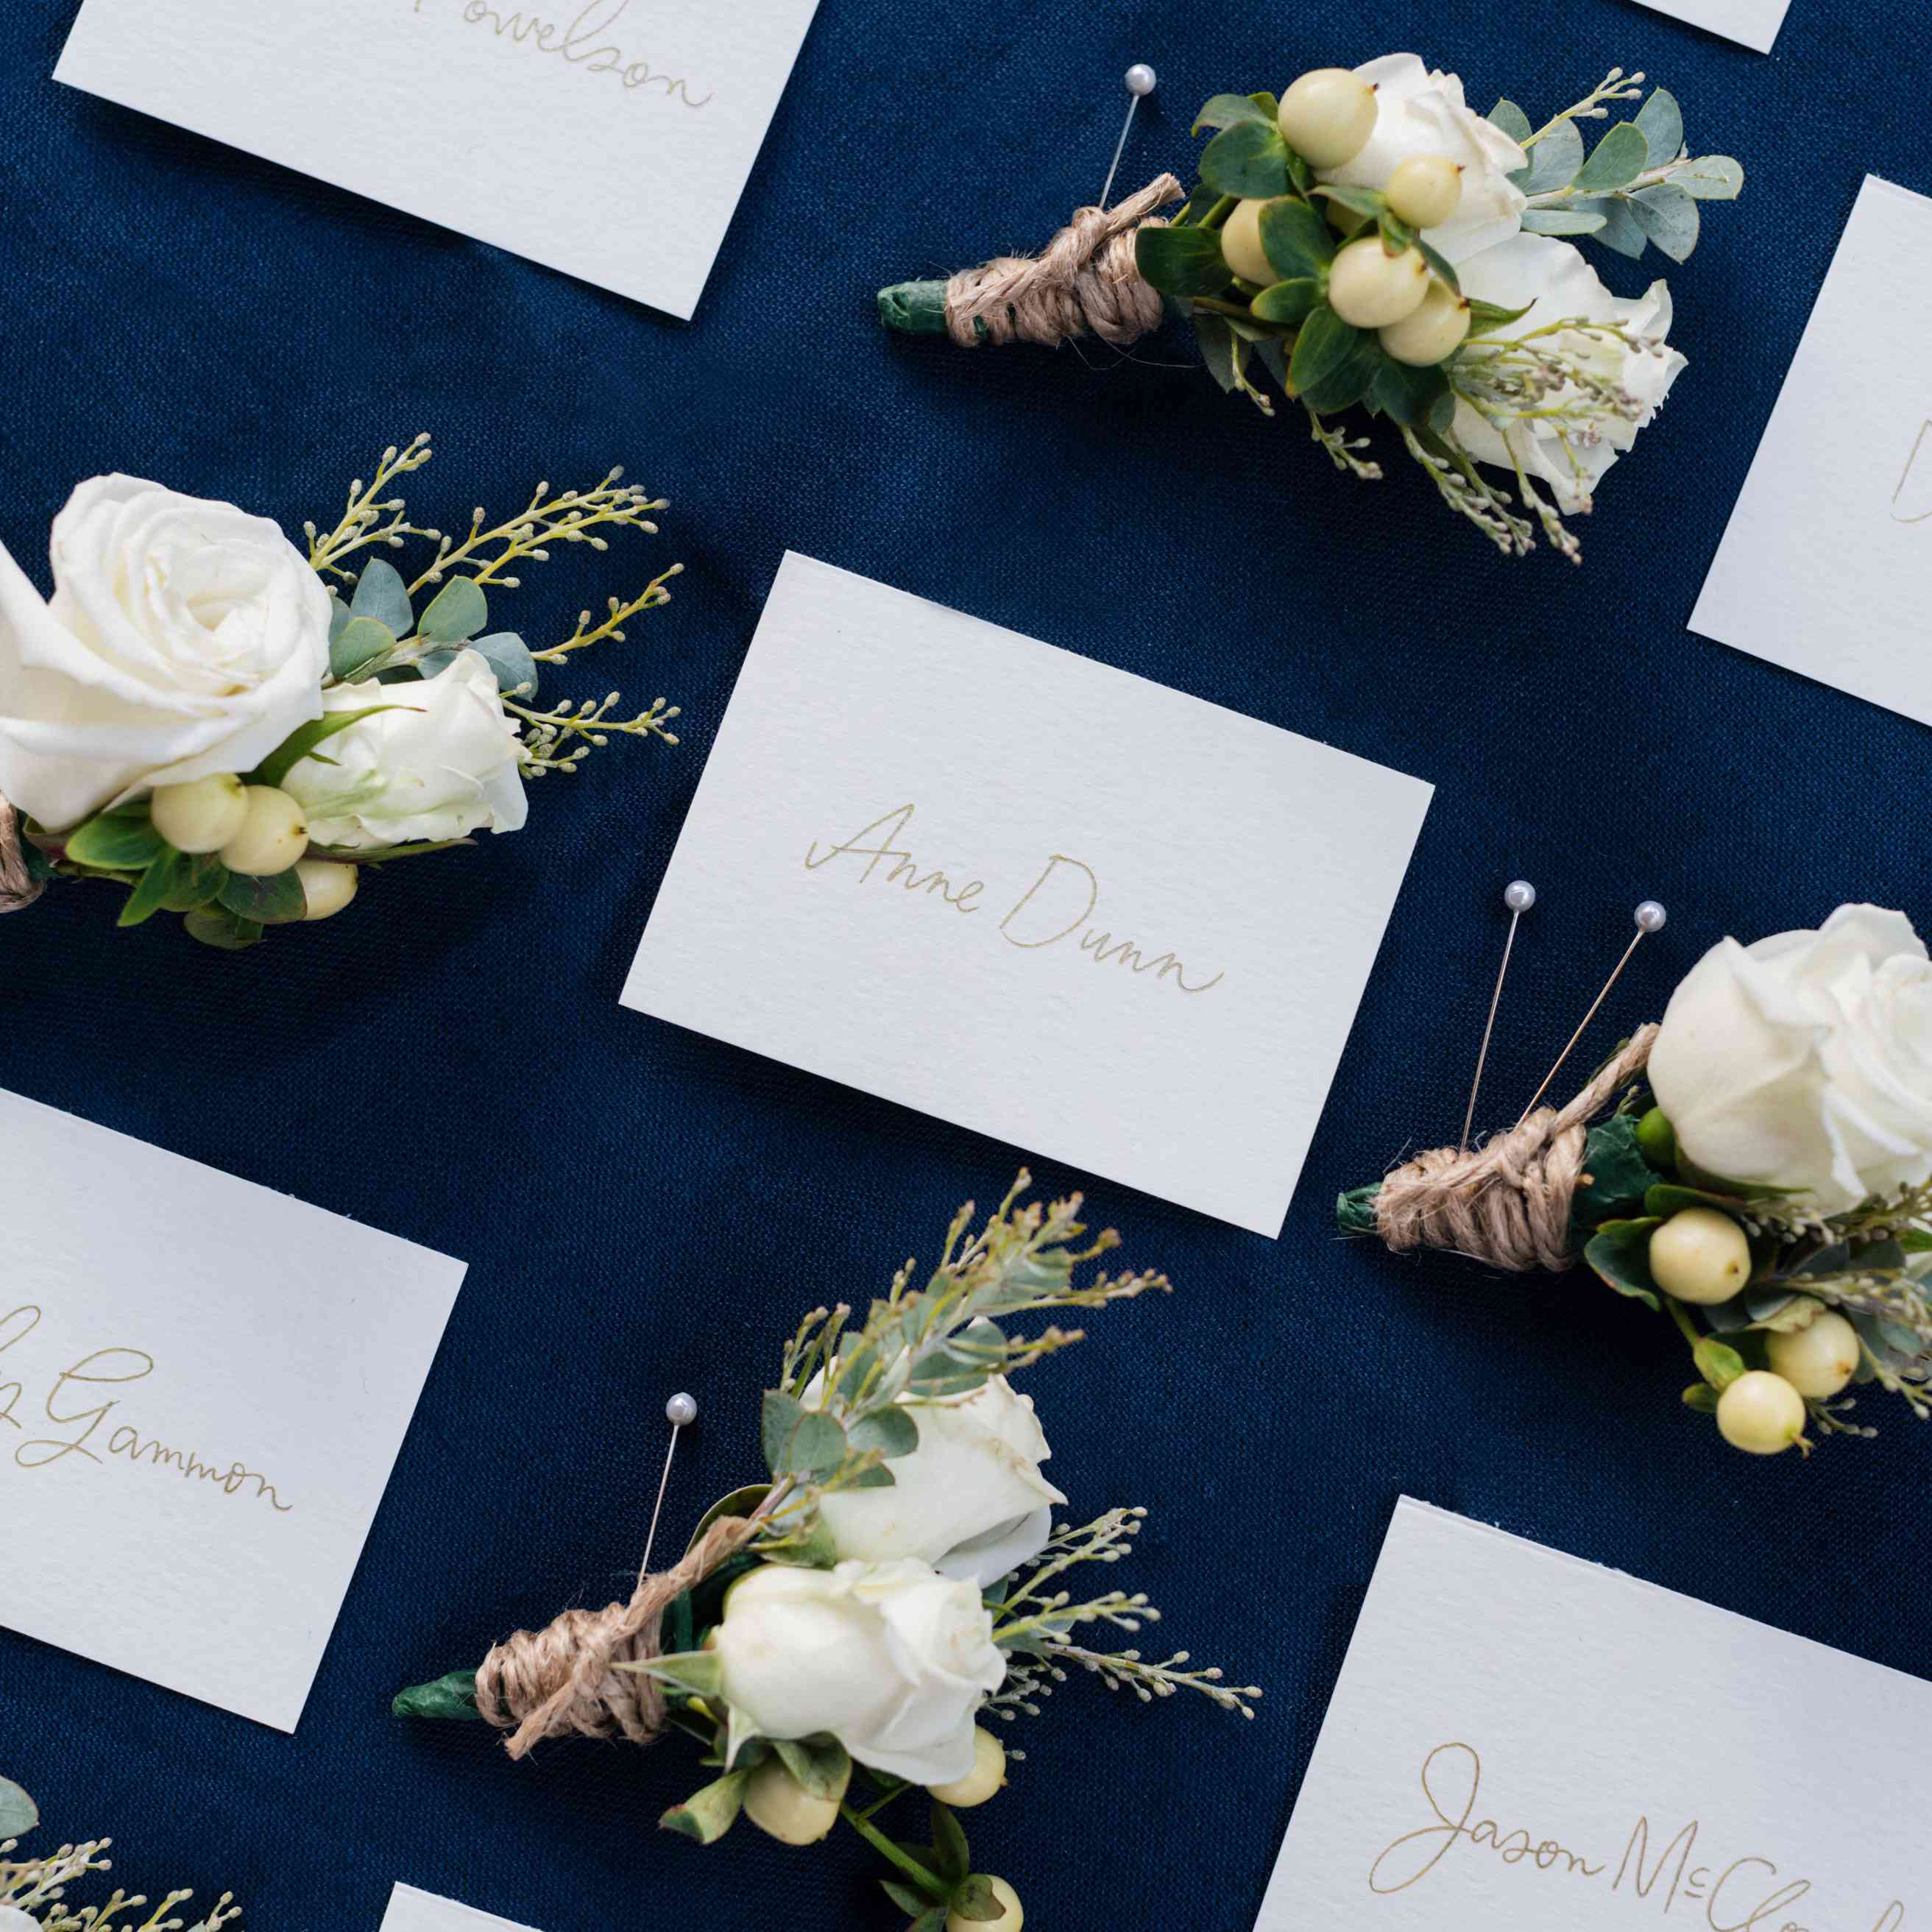 Navy blue tablecloth with nametags